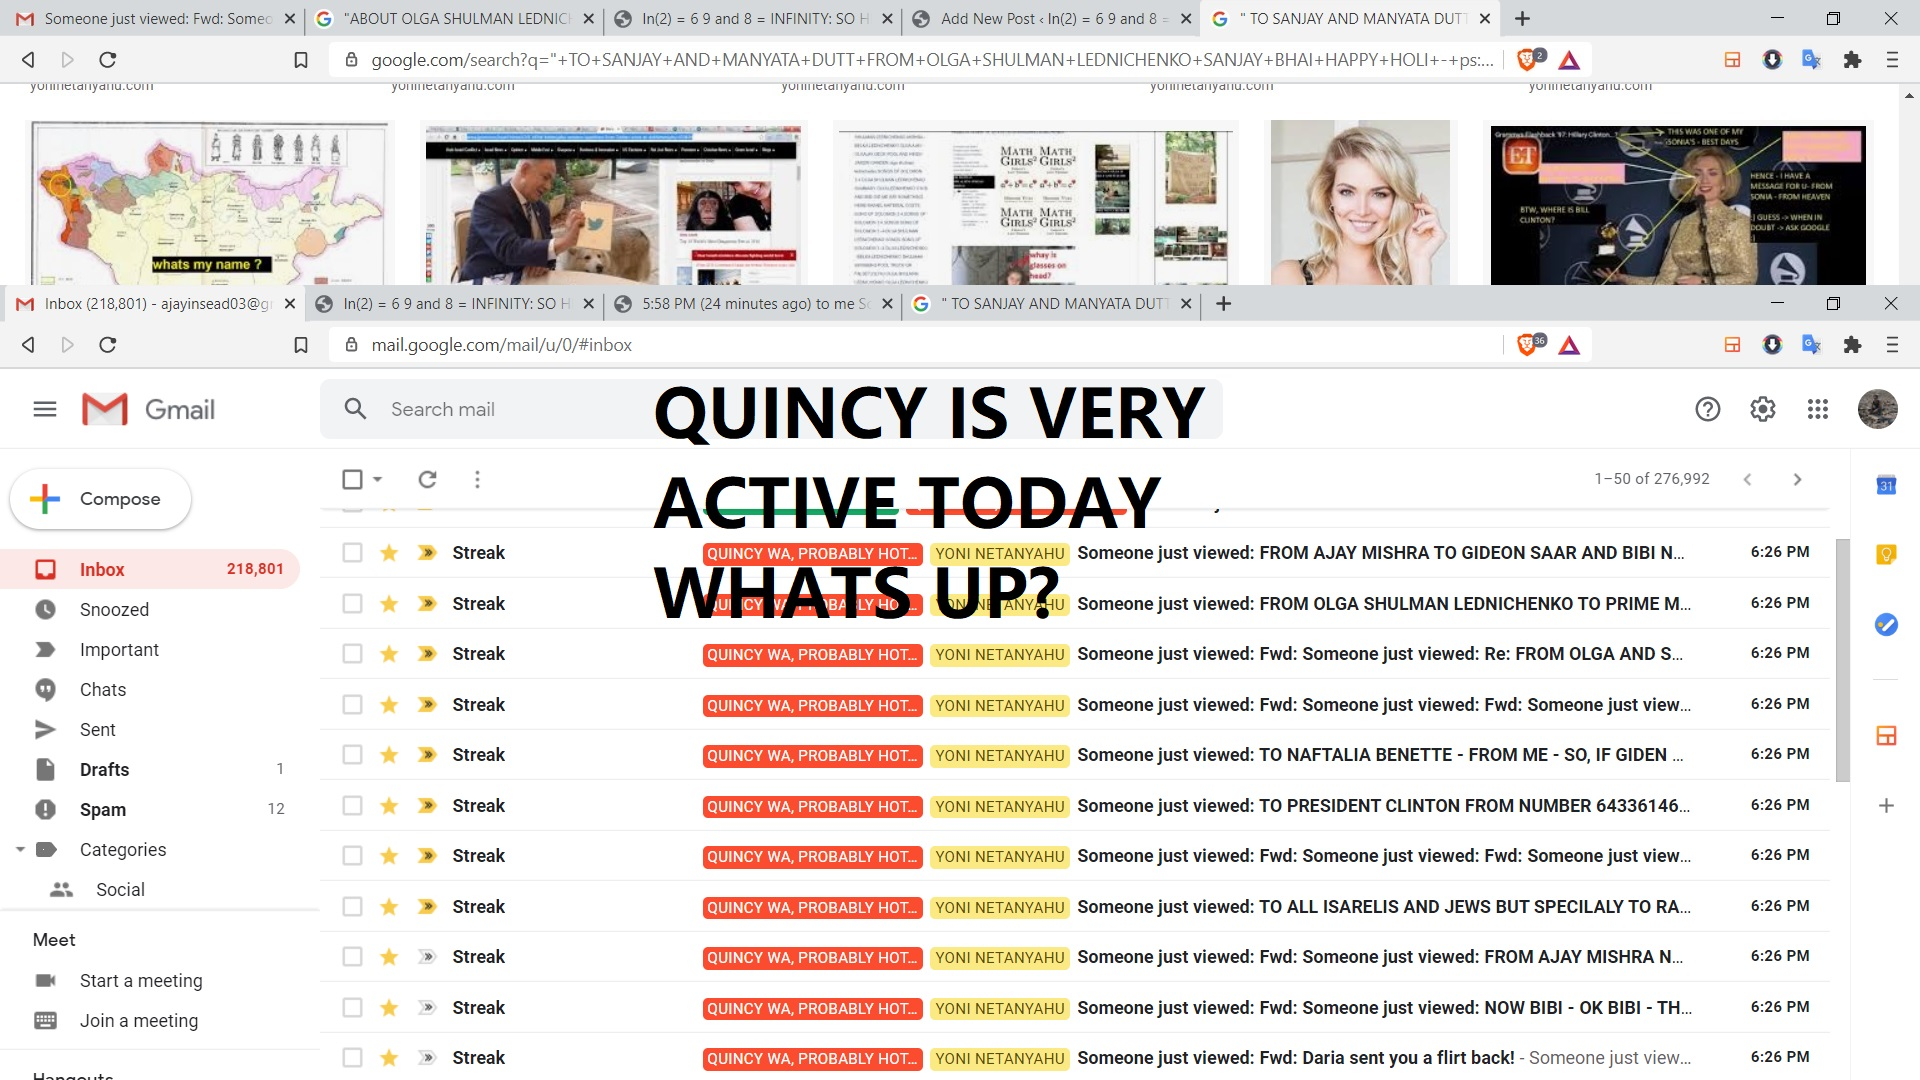 QUINCY IS VERY ACTIVE TODAY WHATS UP